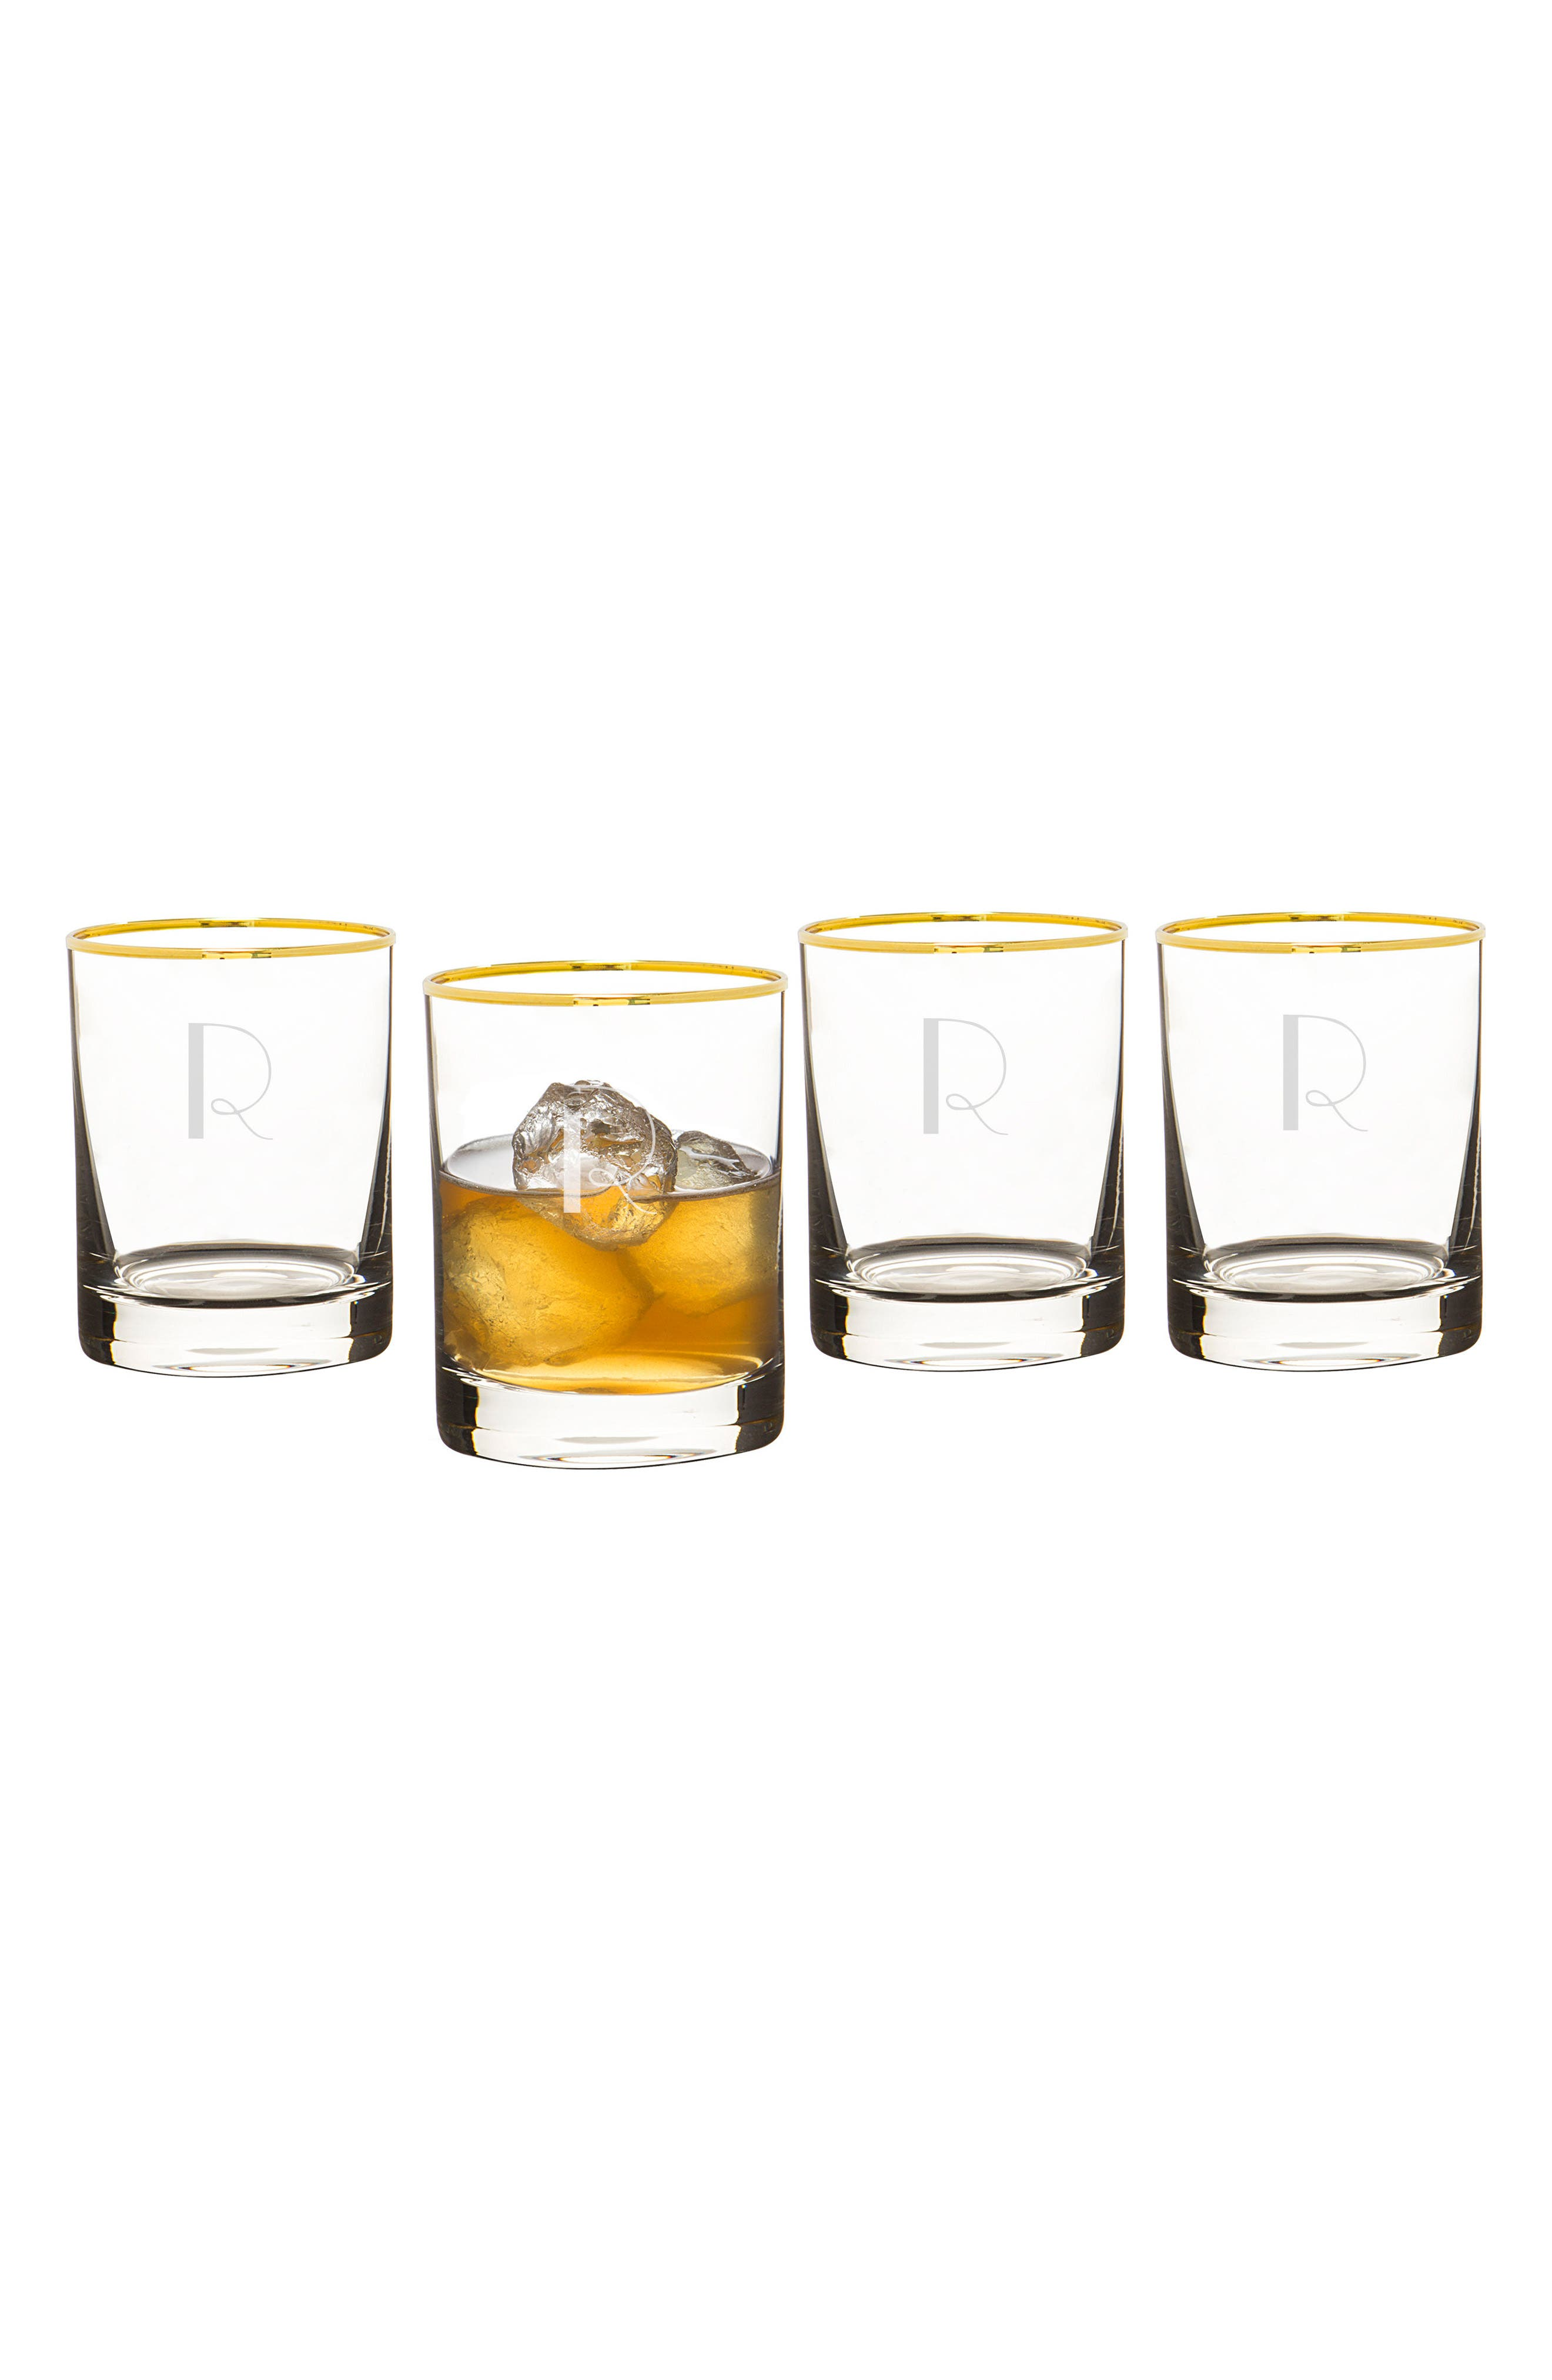 Monogram Set of 4 Double Old Fashioned Glasses,                             Main thumbnail 18, color,